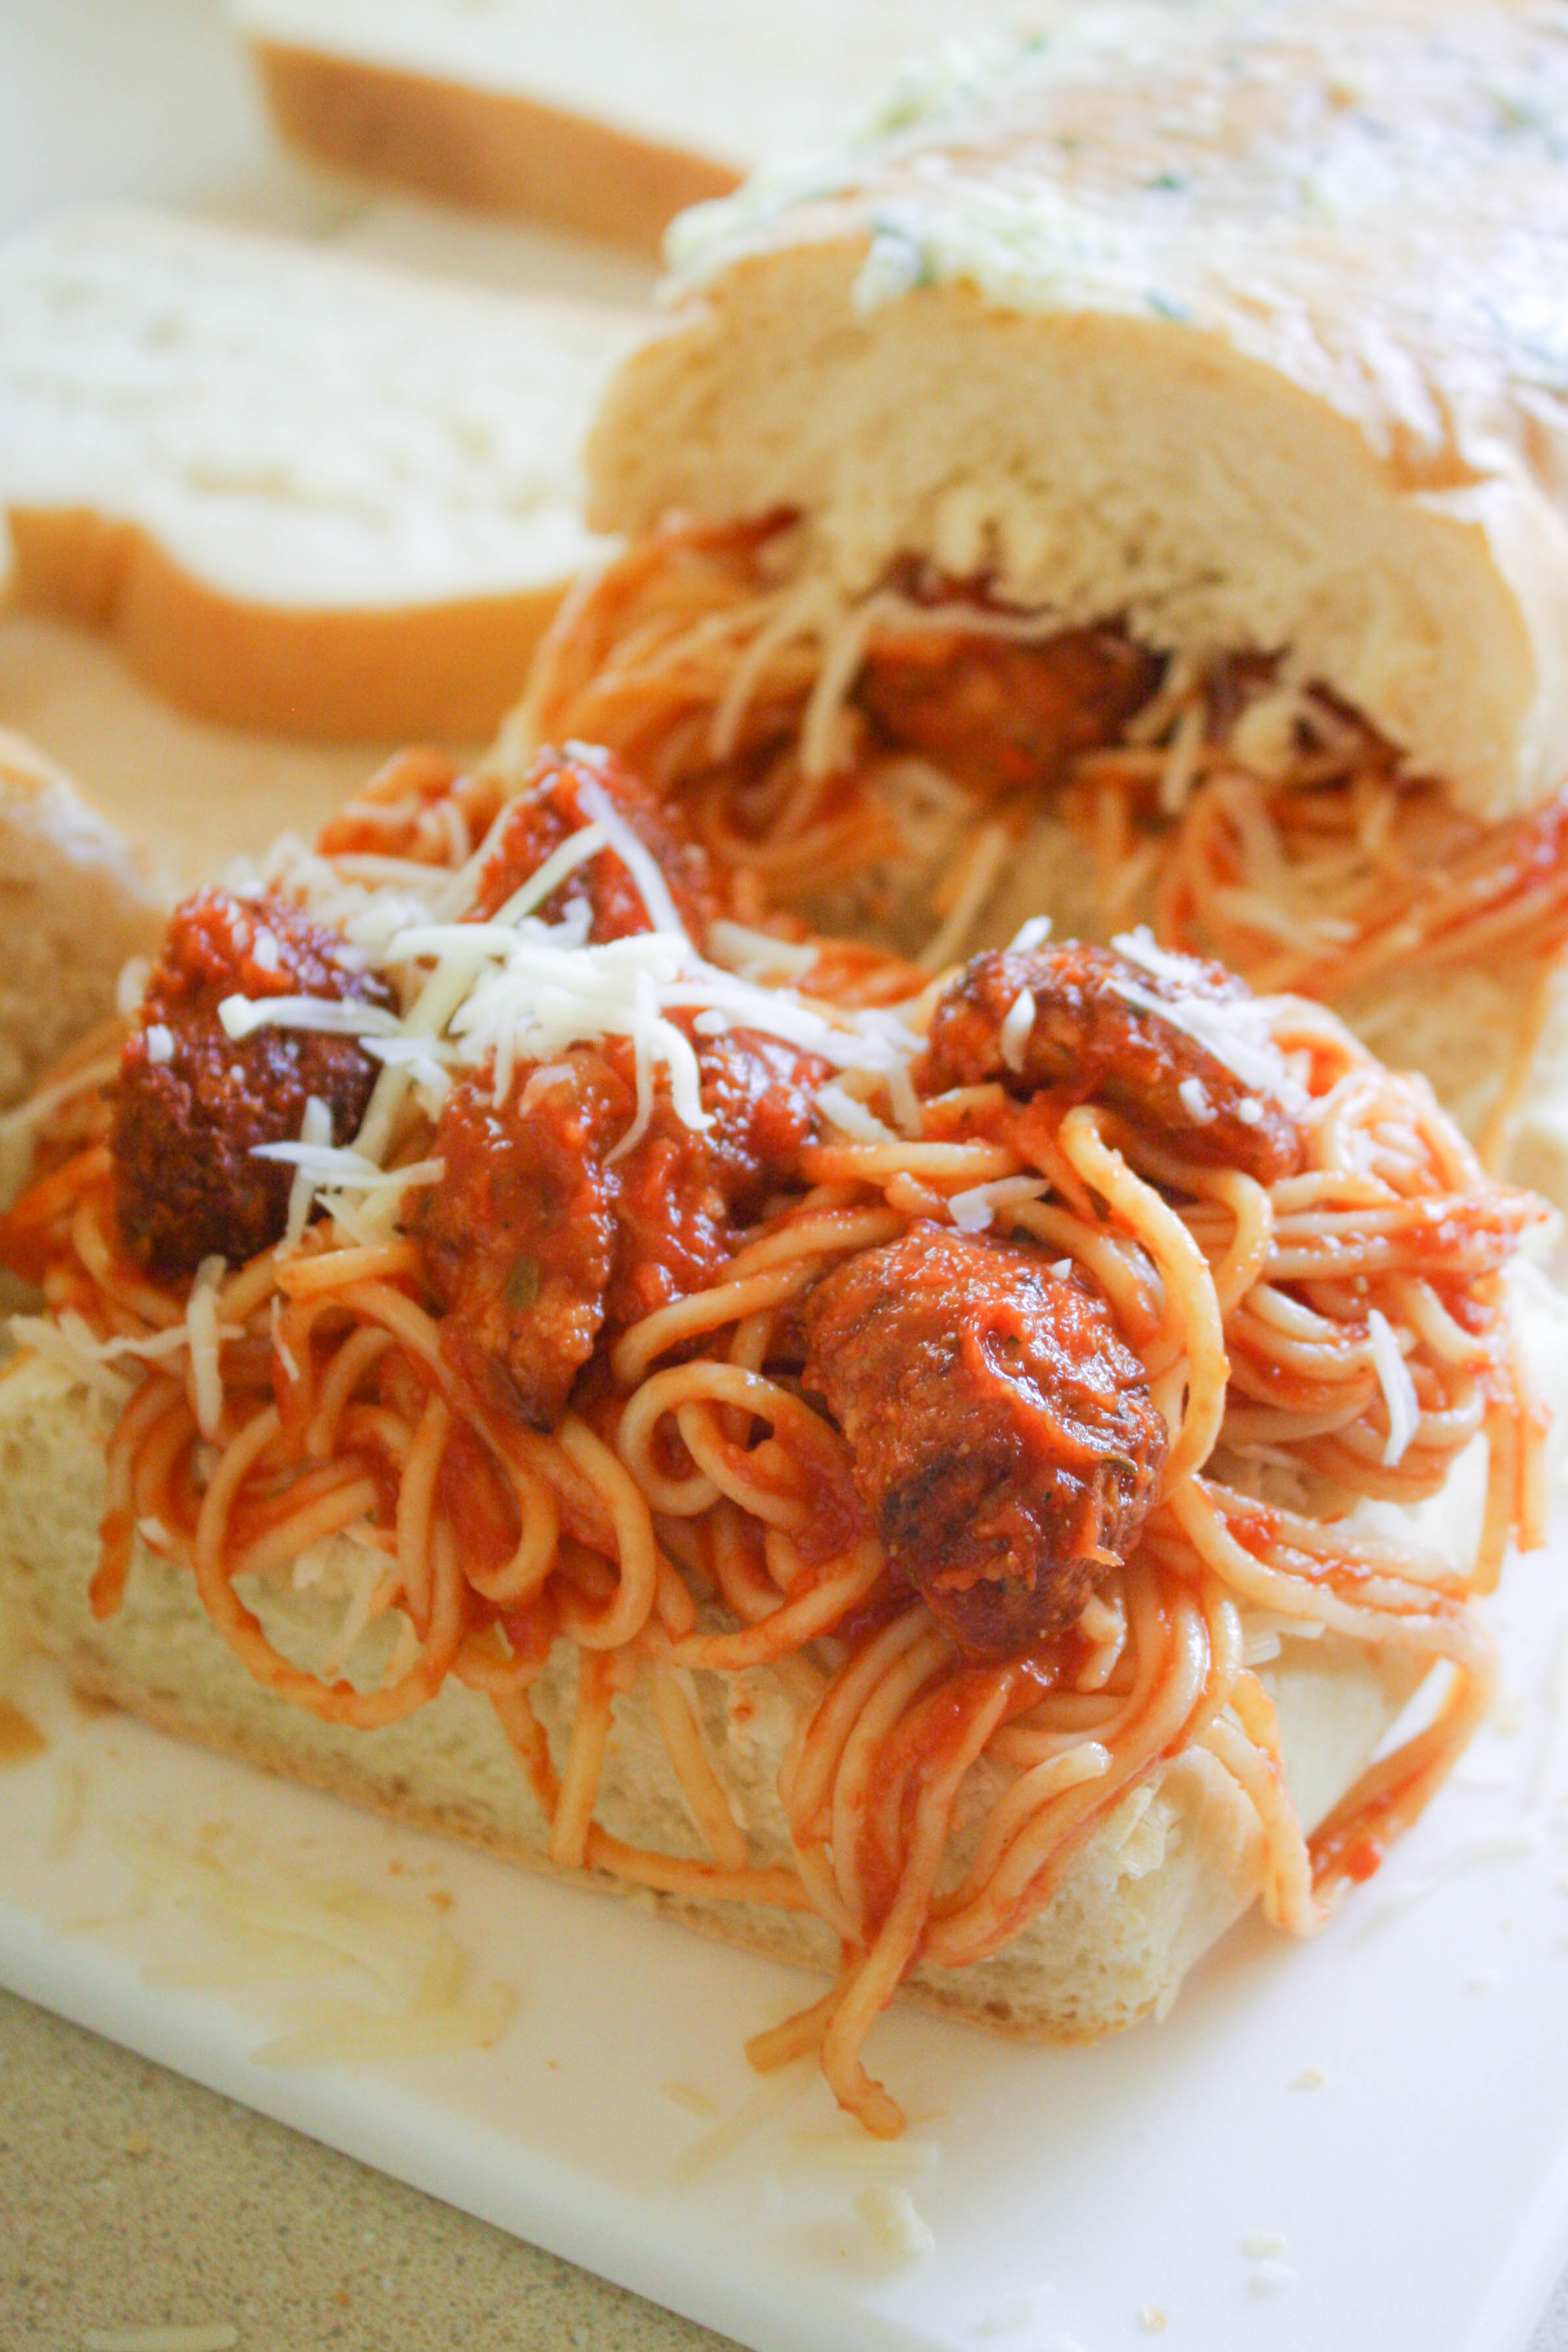 Leftover Spaghetti & Meatball Panini is a great way to refresh your leftovers! You'll love this fun meal!